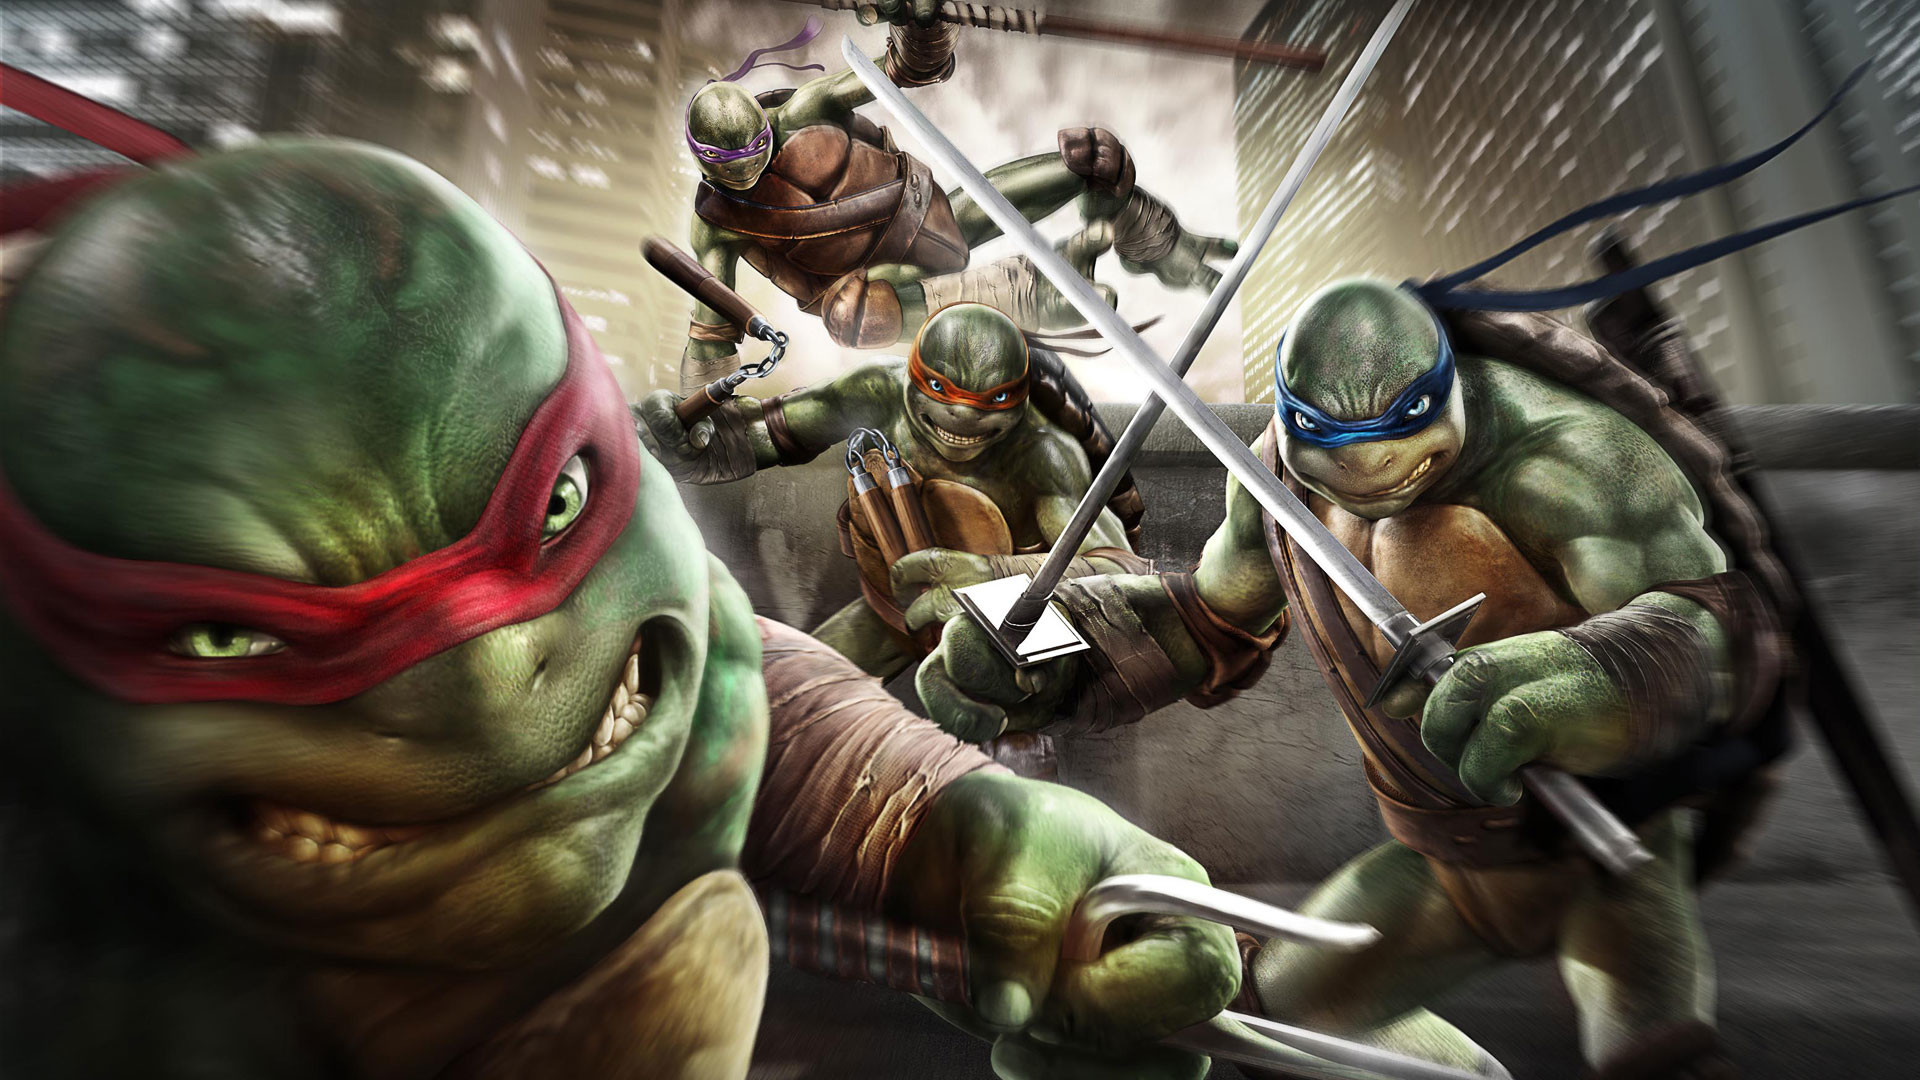 Teenage Mutant Ninja Turtles Wallpapers 66 Images